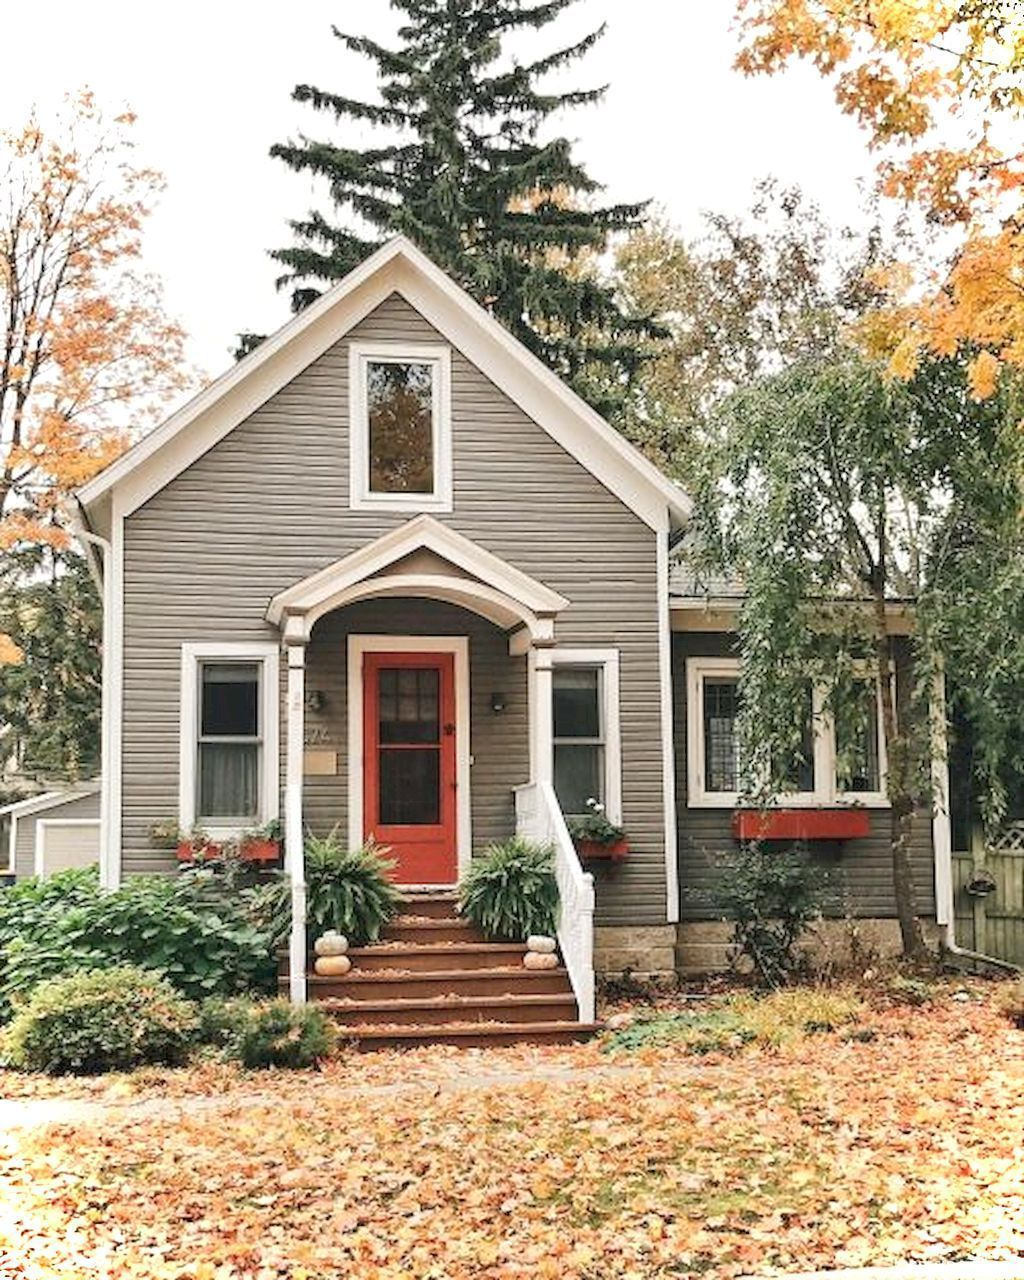 Small House Exterior Ideas: 20+ Charming Small Cottage House Exterior Ideas